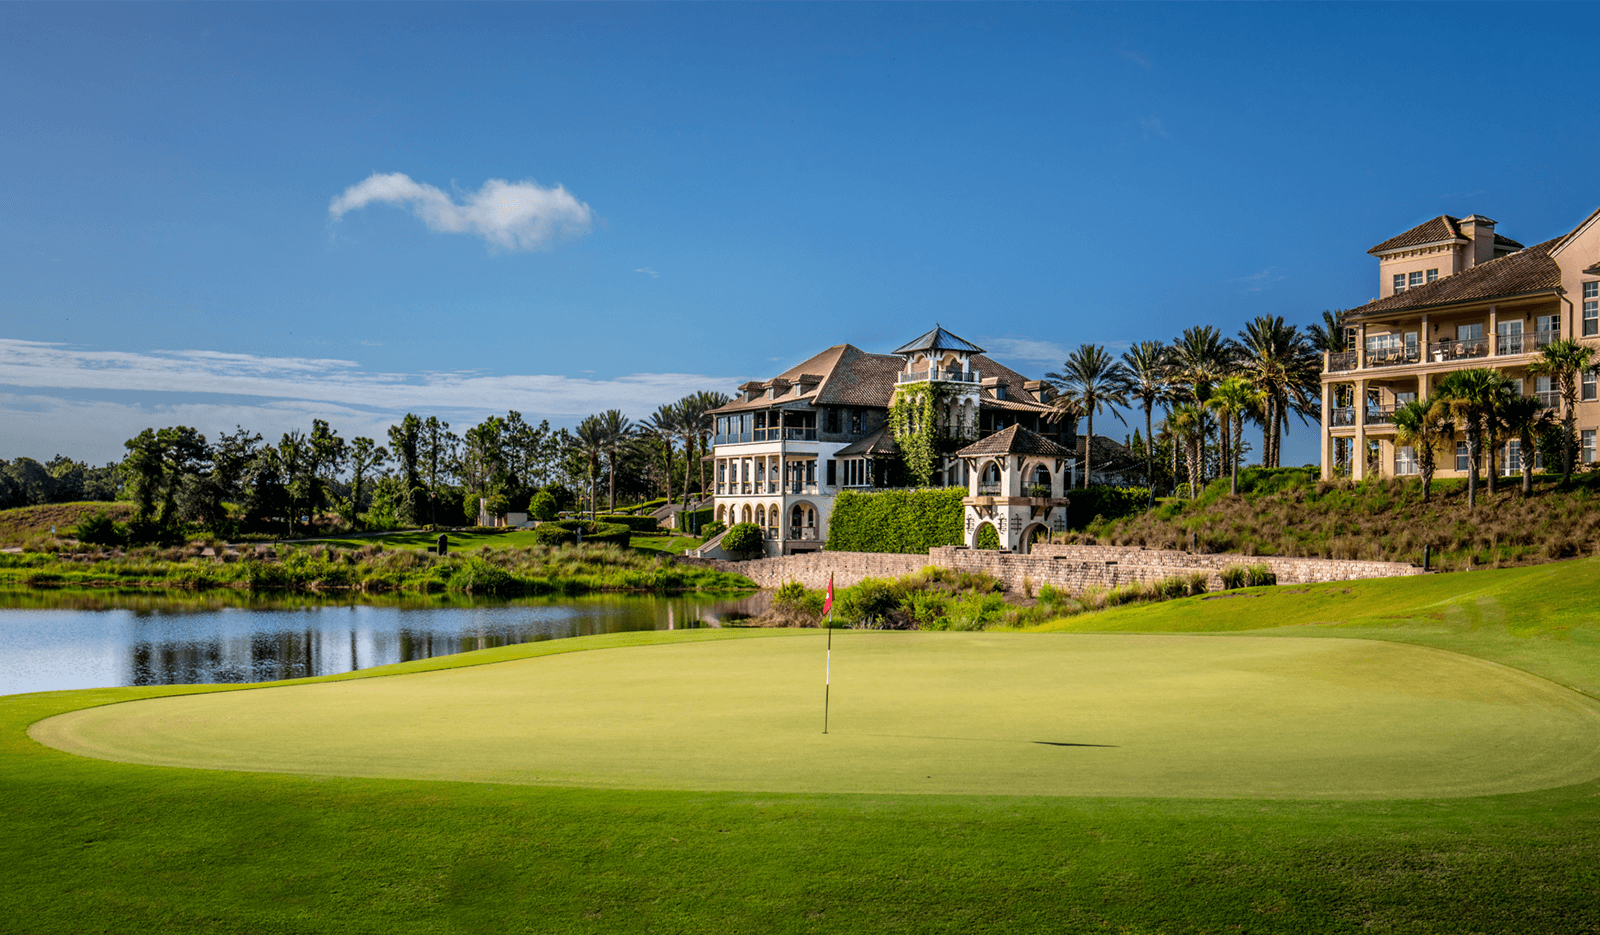 Palencia  - Prestigious championship designed golf course and private club. A challenging Arthur Hill's designed, masterpiece golf course that winds through centuries-old maritime oak trees and along the Intracoastal Waterway.